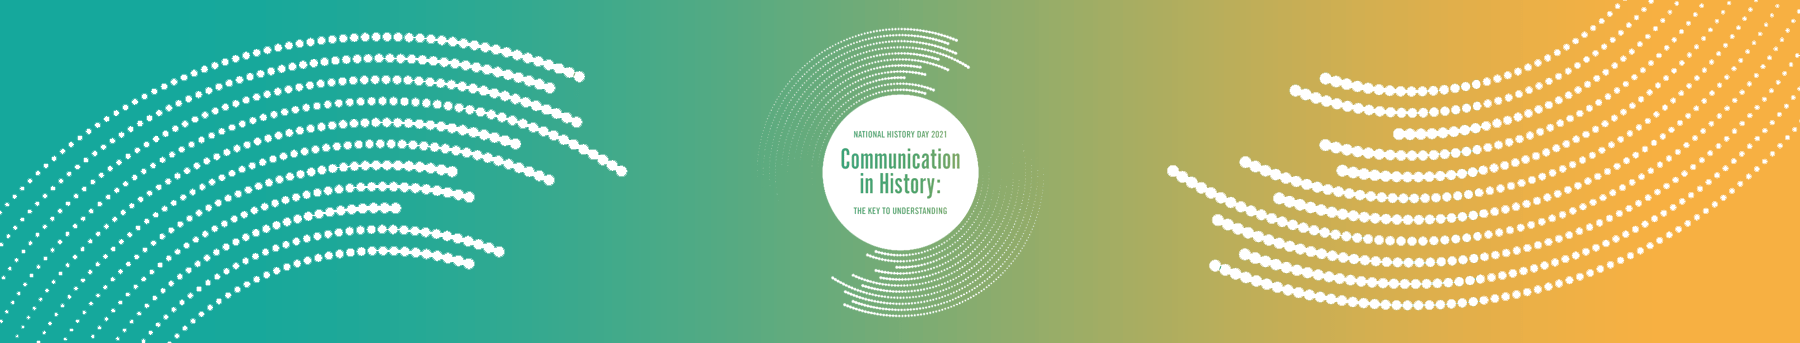 National History Day: Communication in History: The Key to Understanding